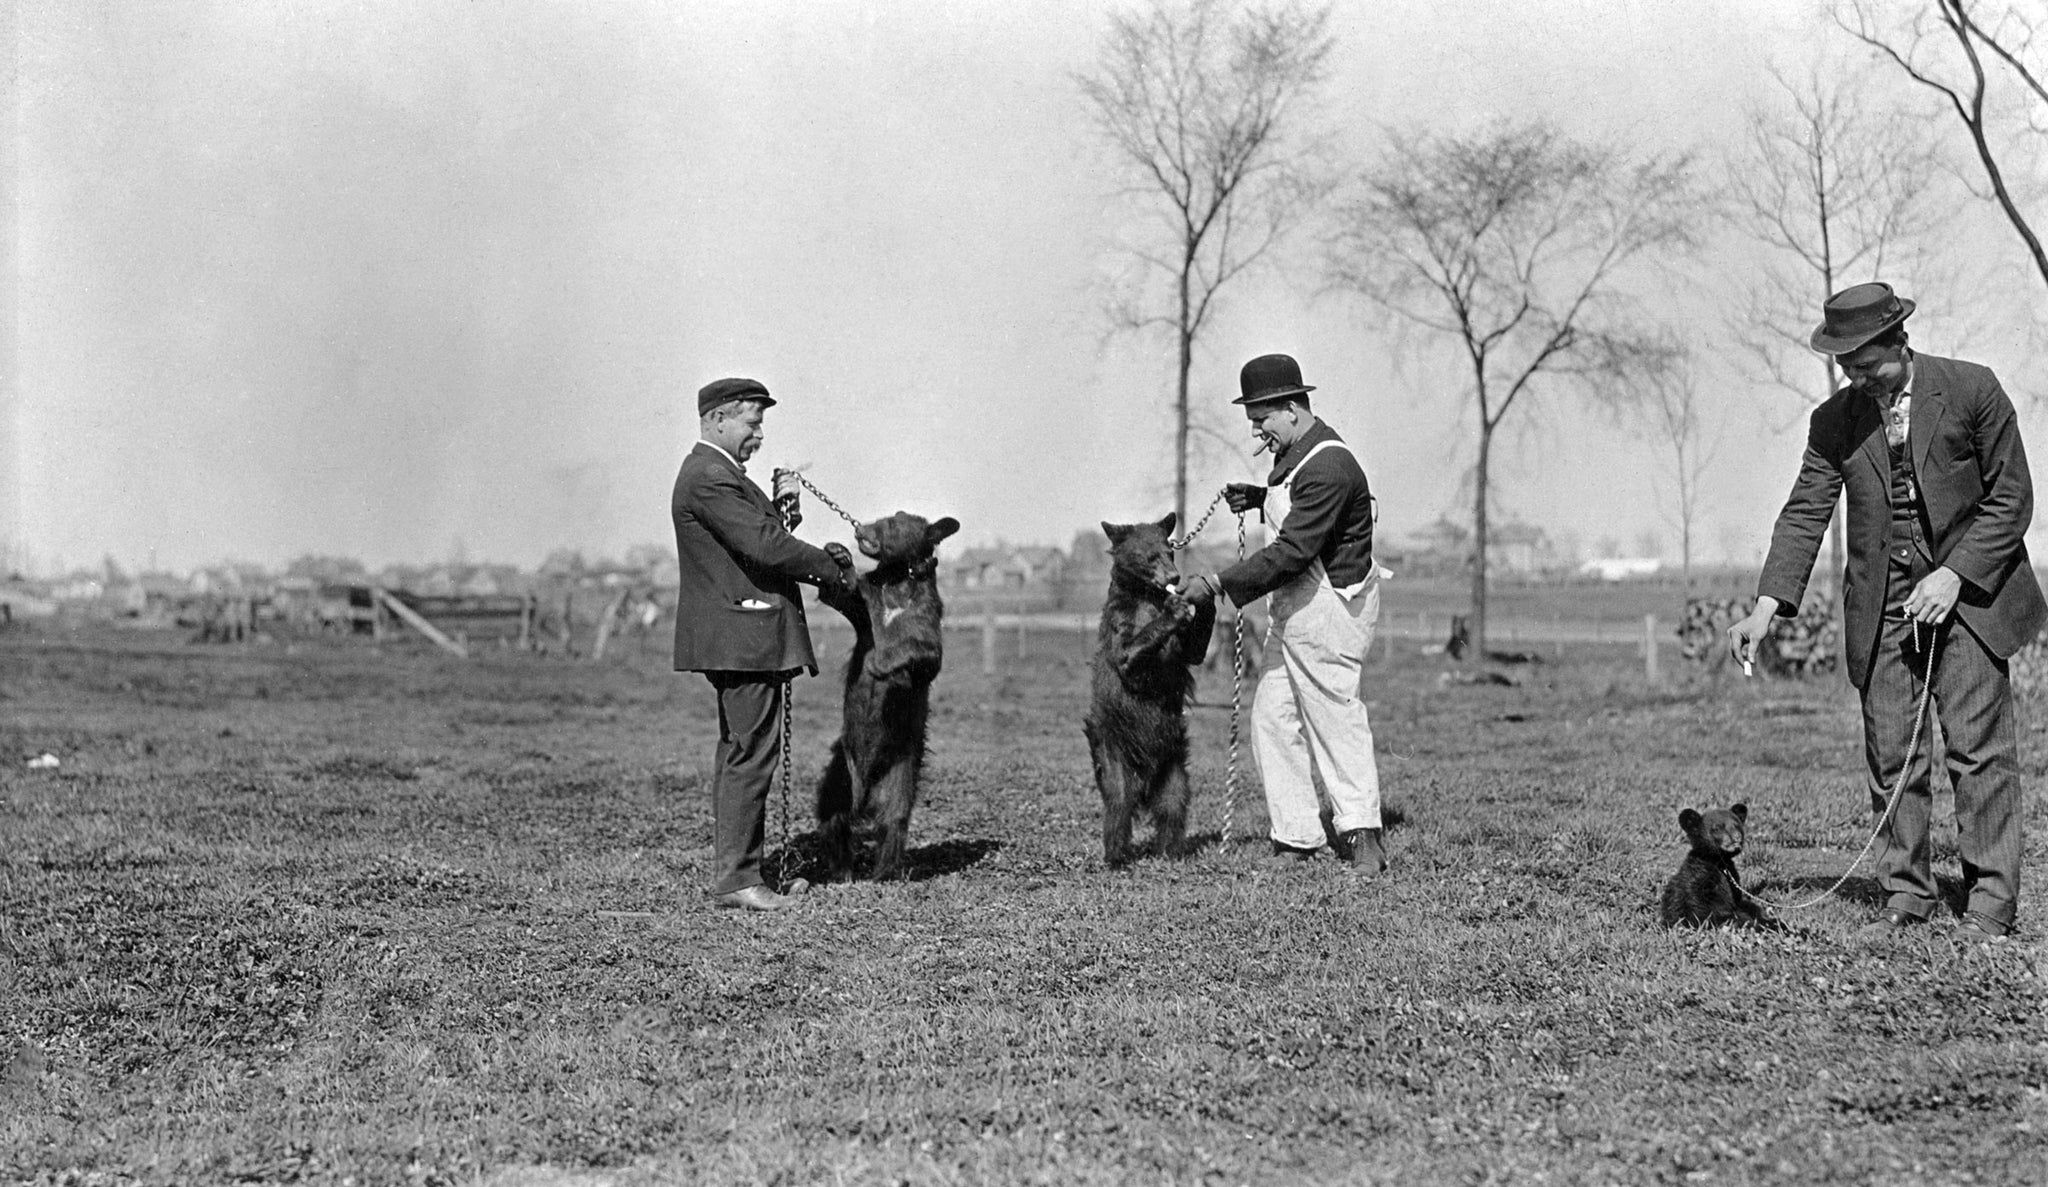 Officer Louis Thomson with two other men playing with leashed bears, circa 1910. These are believed to be the first bear cubs of what would become the Wildwood Zoo. -- Courtesy of the Marshfield History Project